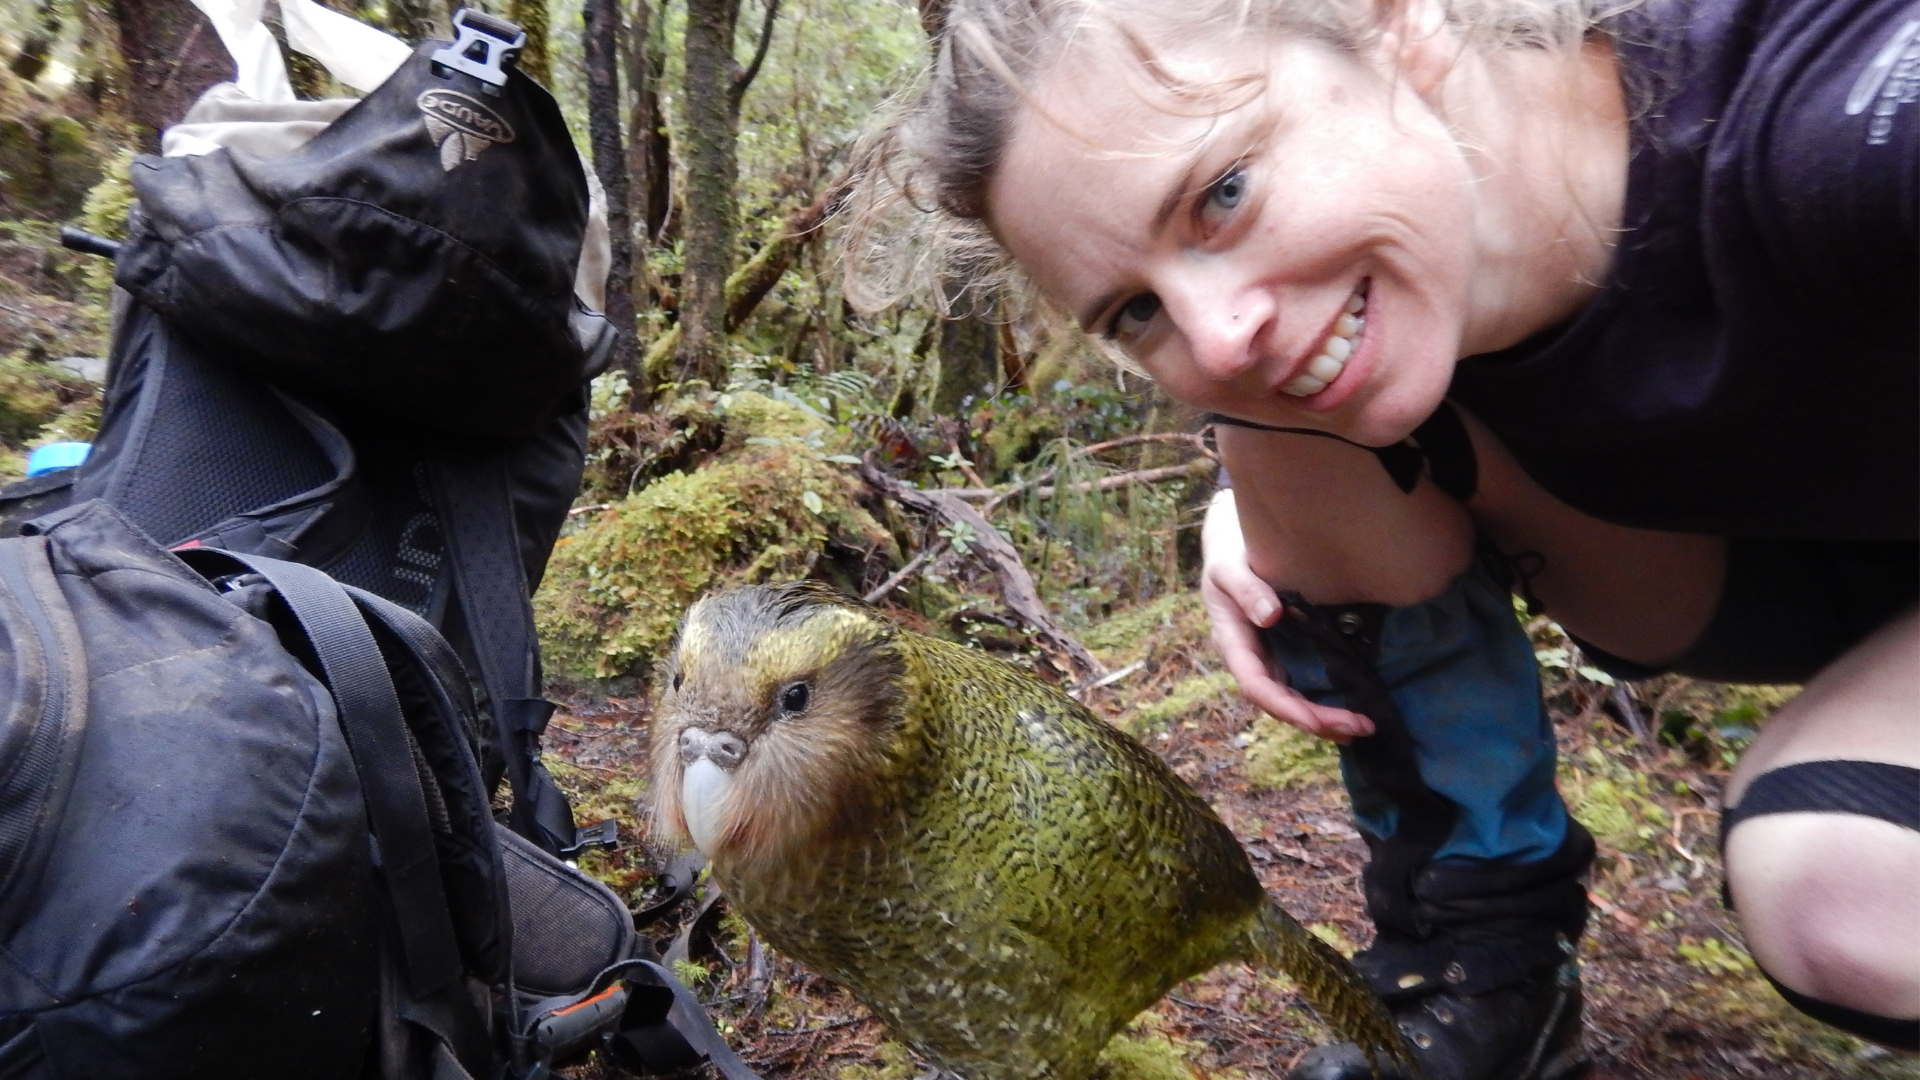 https://rfacdn.nz/zoo/assets/media/juvenile-kakapo-on-off.png